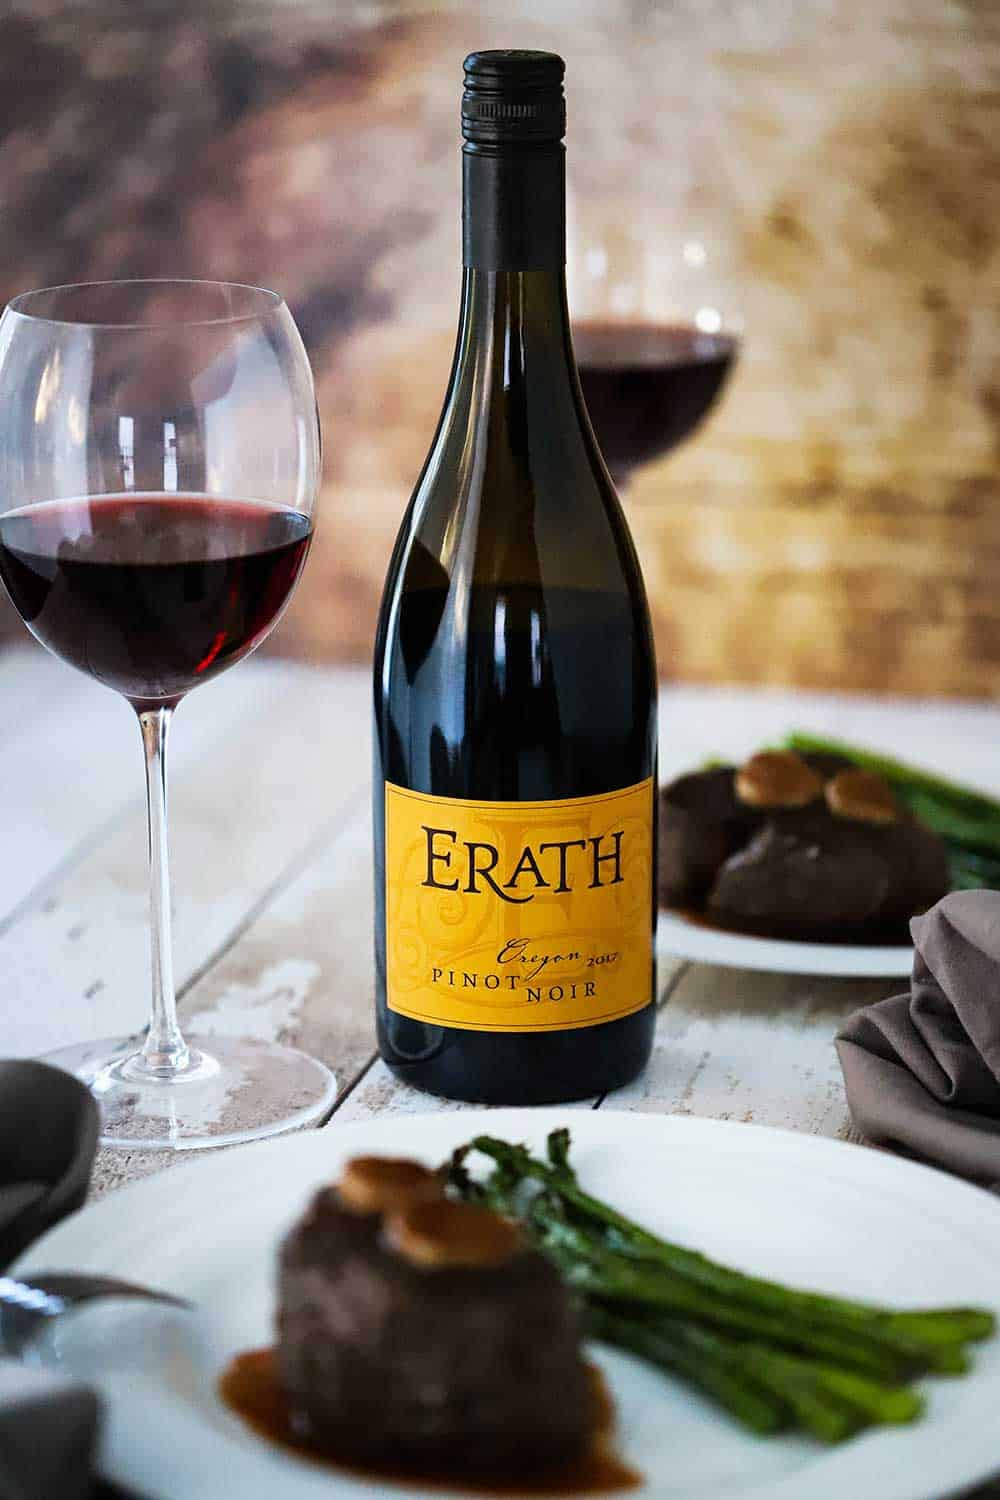 A bottle of Erath Oregon Pinot Noir sitting next to a plate of filet mignon and roasted asparagus.